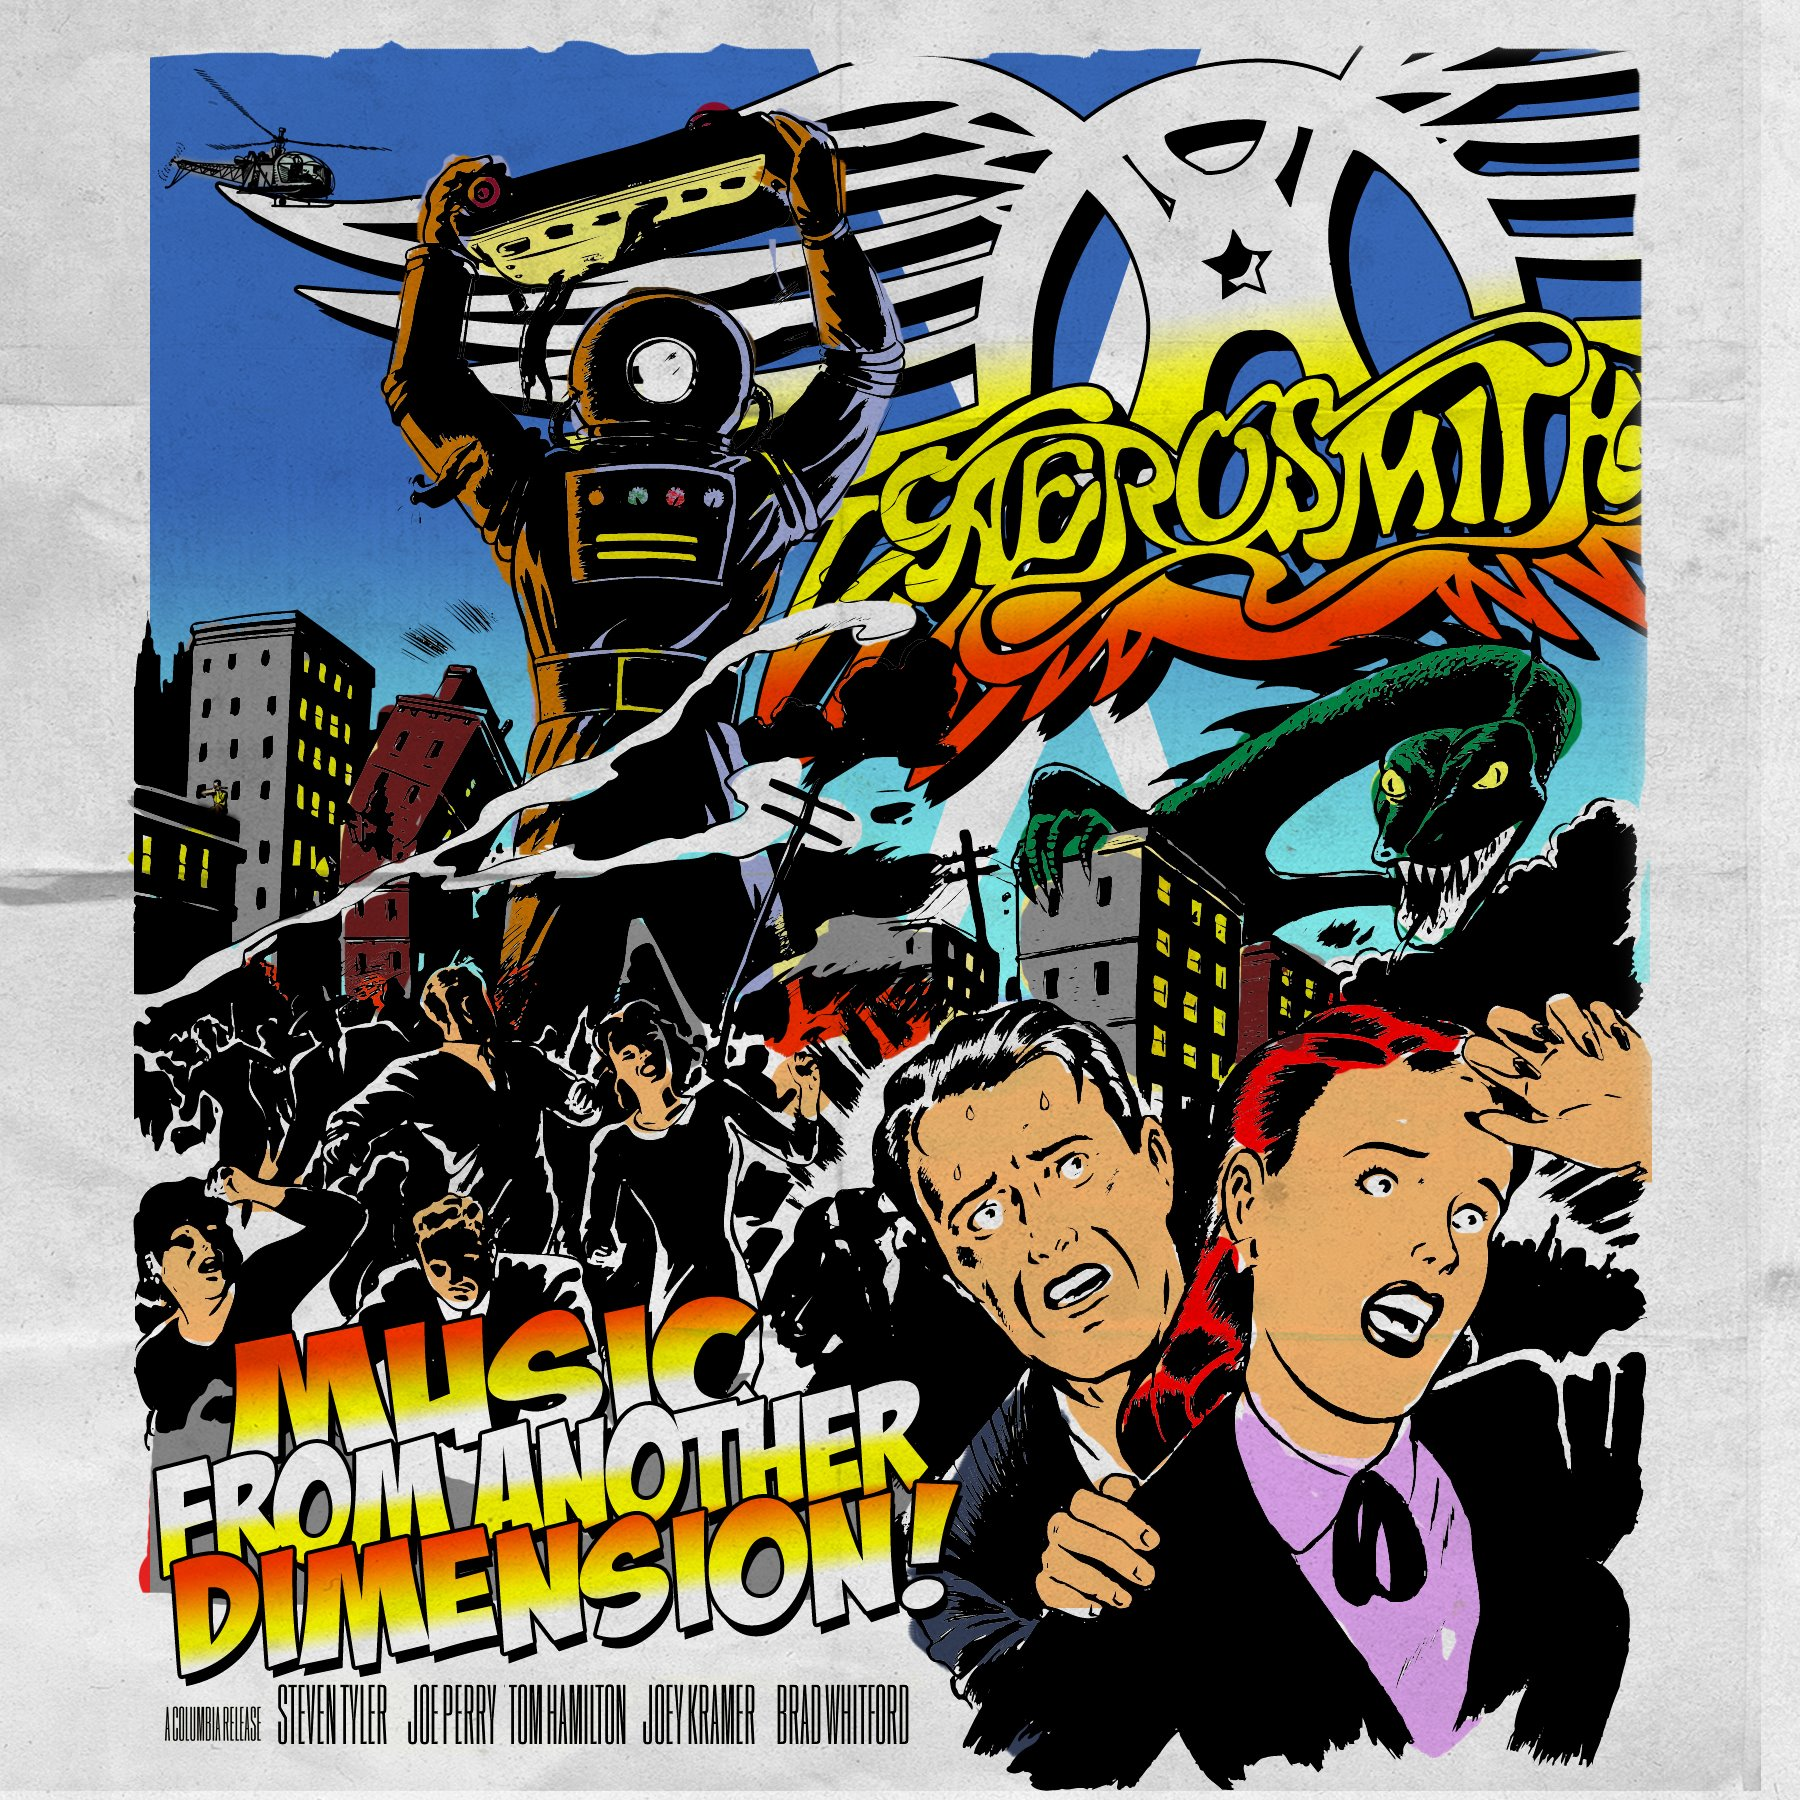 Music from Another Dimension! - Aerosmith: Amazon.de: Musik